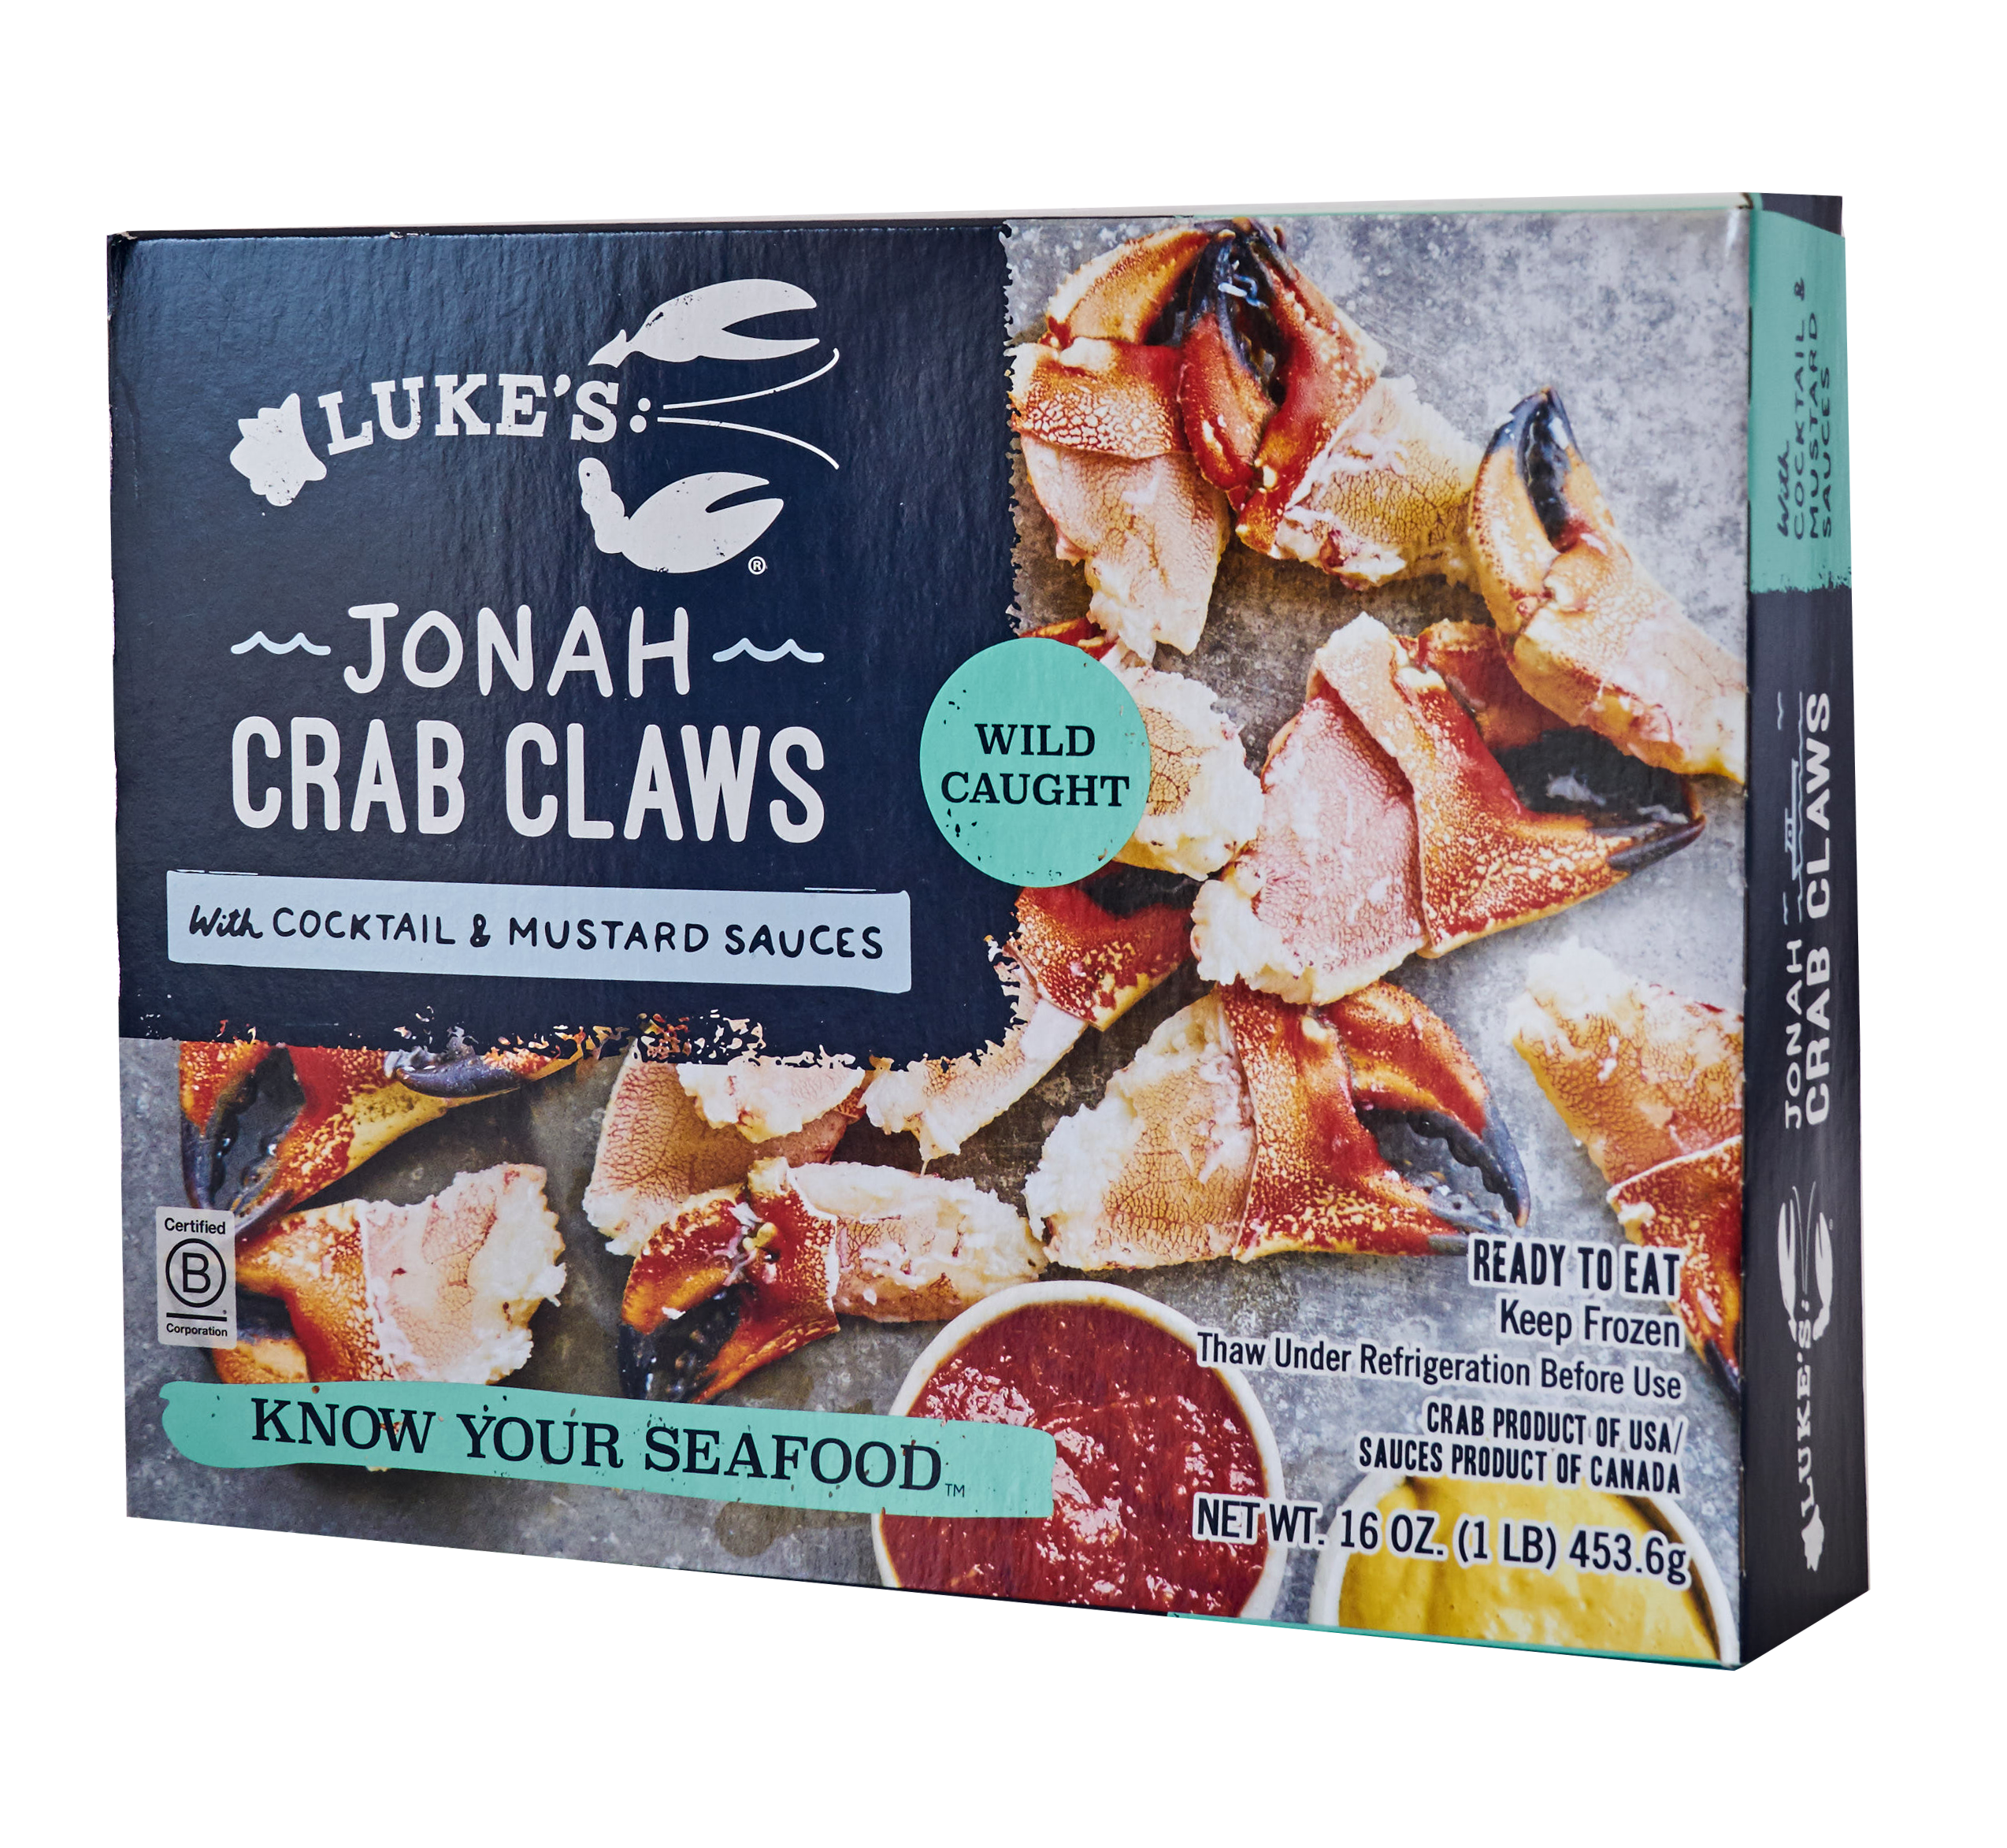 JONAH CRAB CLAWS WITH COCKTAIL AND MUSTARD SAUCES